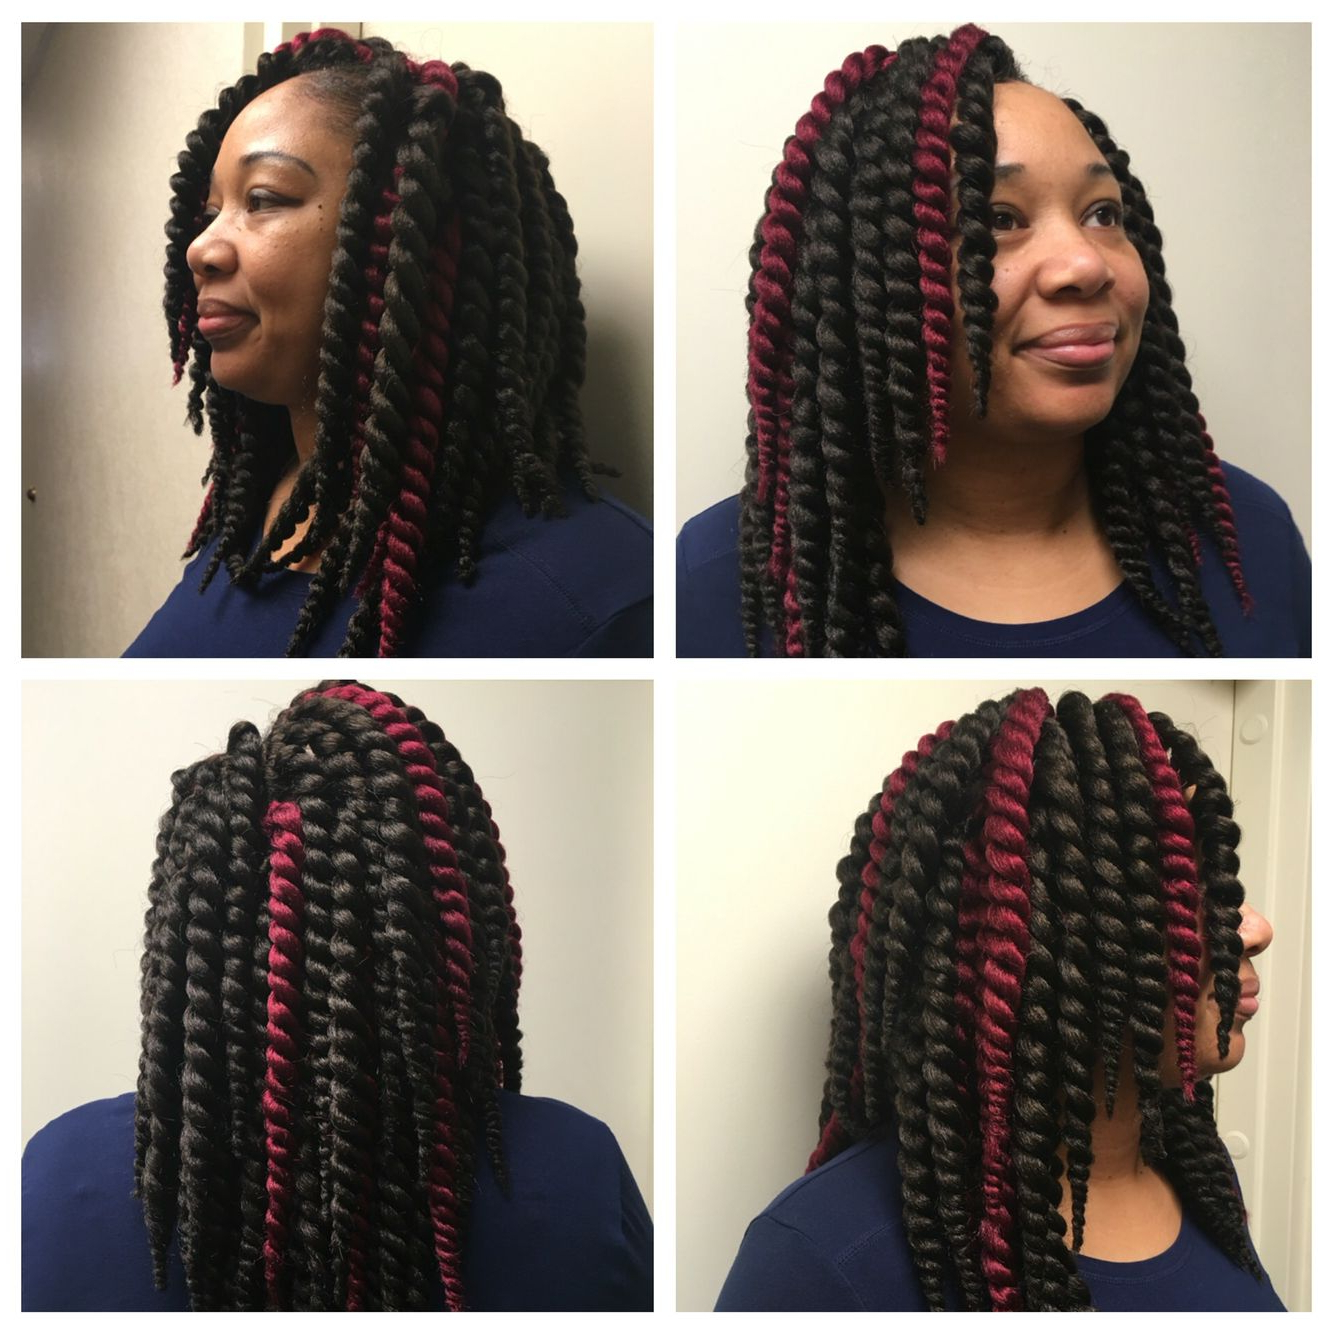 Tiffanni Natural Hair With Regard To Well Liked Two Tone Twists Hairstyles With Beads (Gallery 1 of 20)